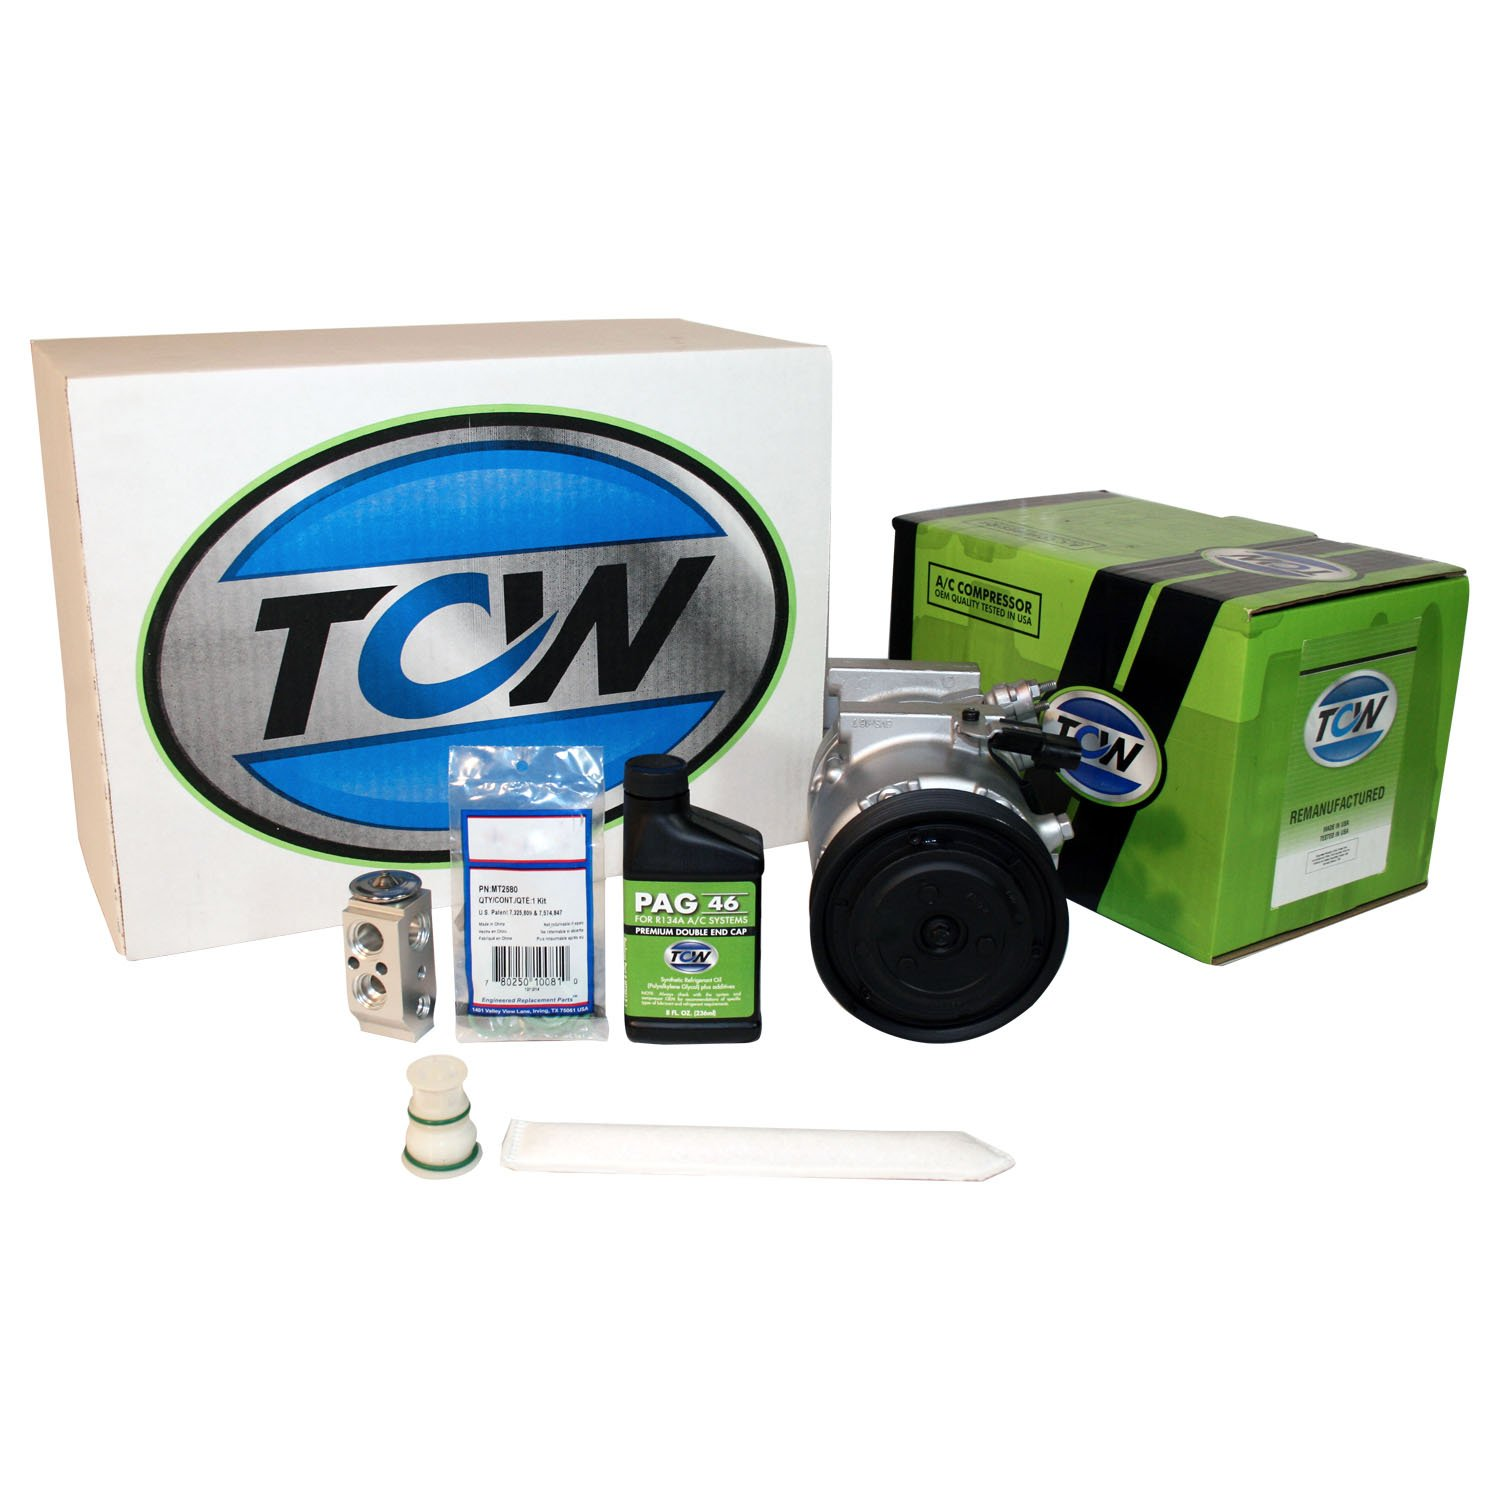 TCW K1000773R A//C Kit with Premium Remanufactured Compressor